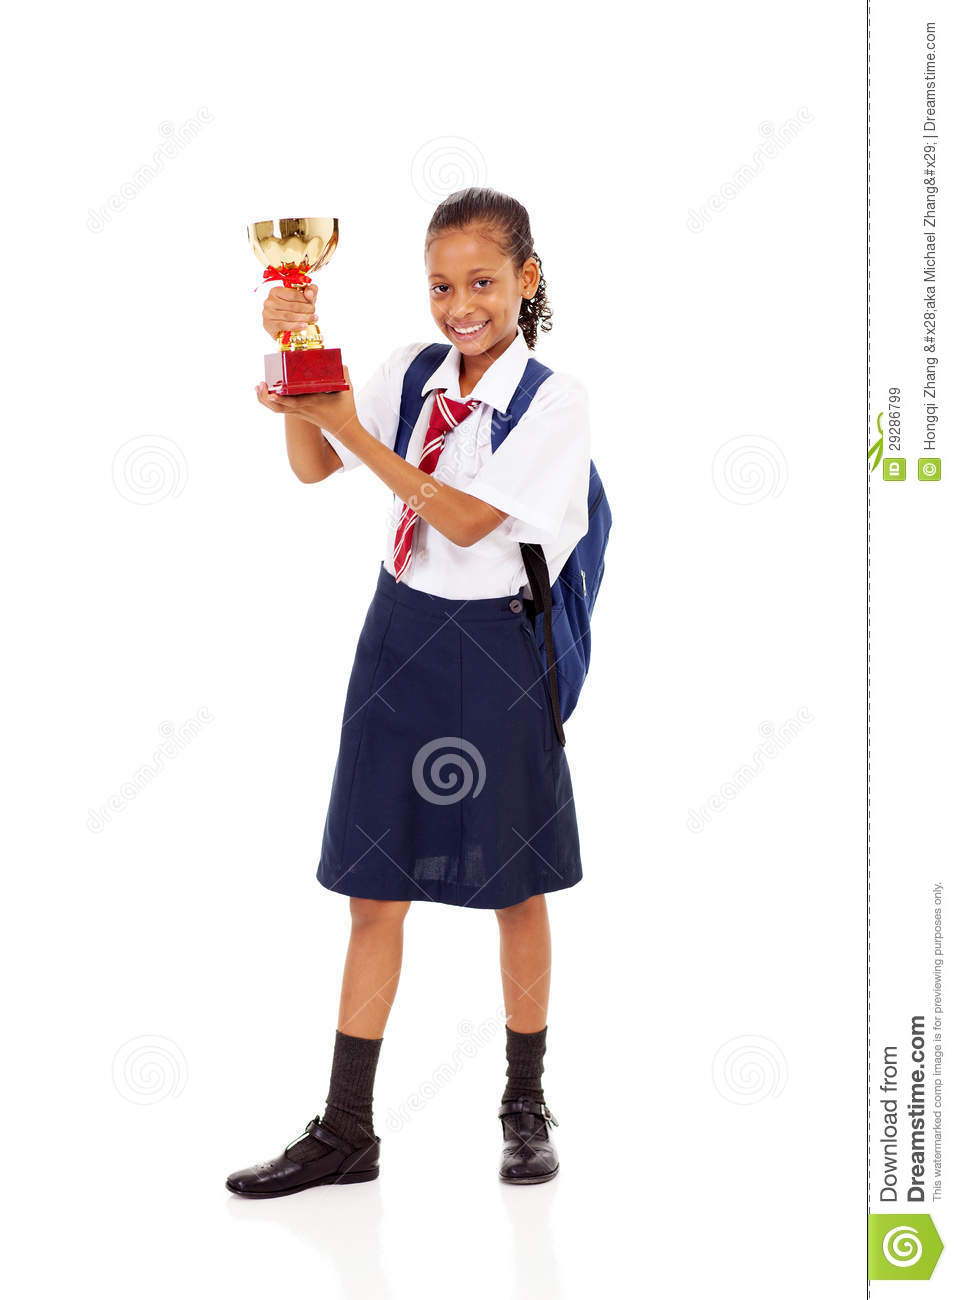 Primary Schoolgirl Trophy Royalty Free Stock Images - Image: 29286799